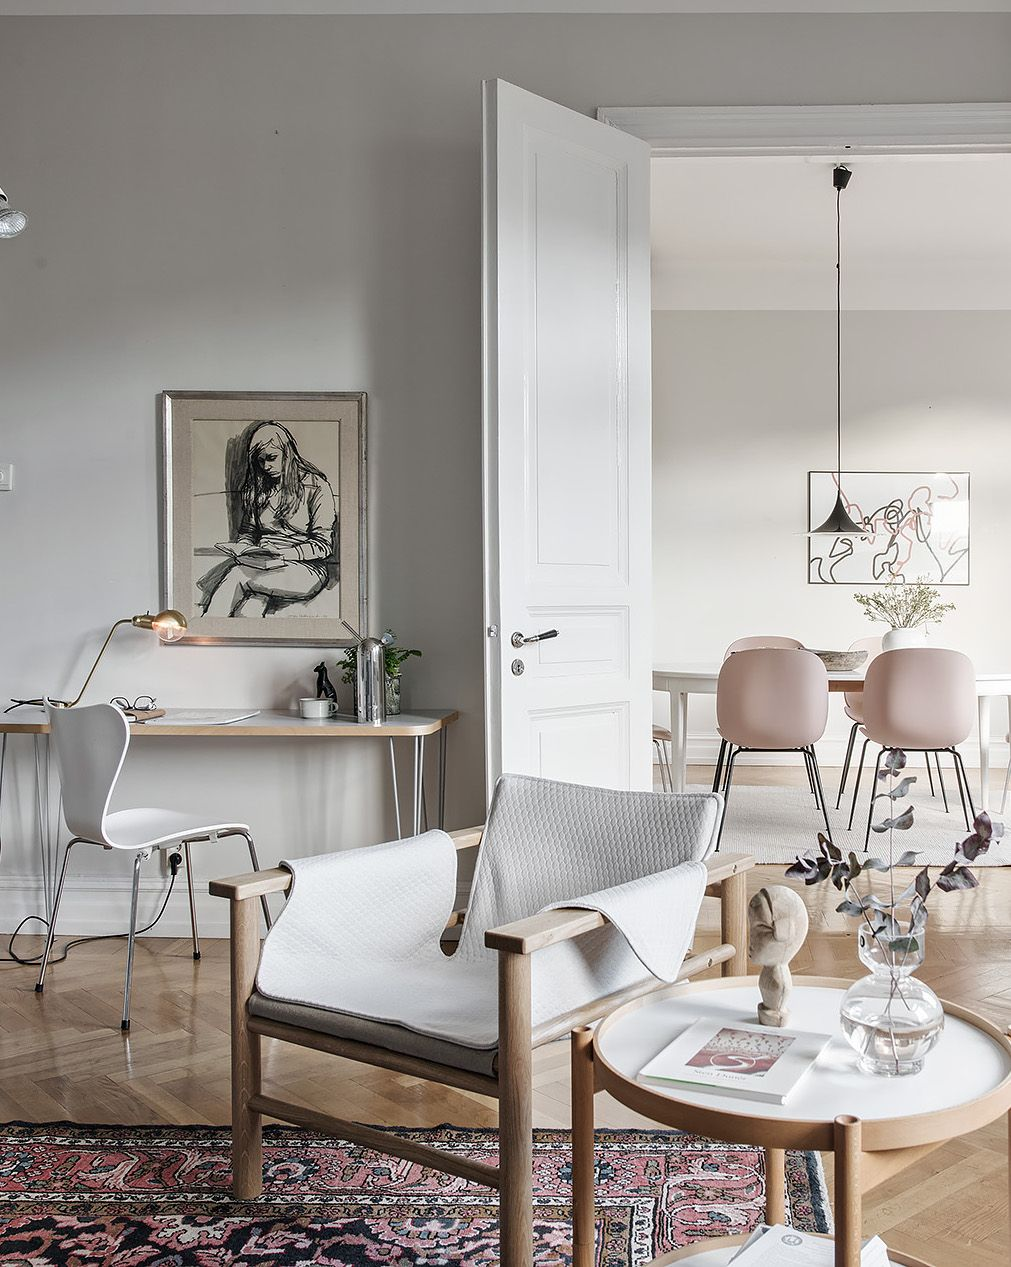 Stylish apartment with a soft look - via Coco Lapine Design blog ...